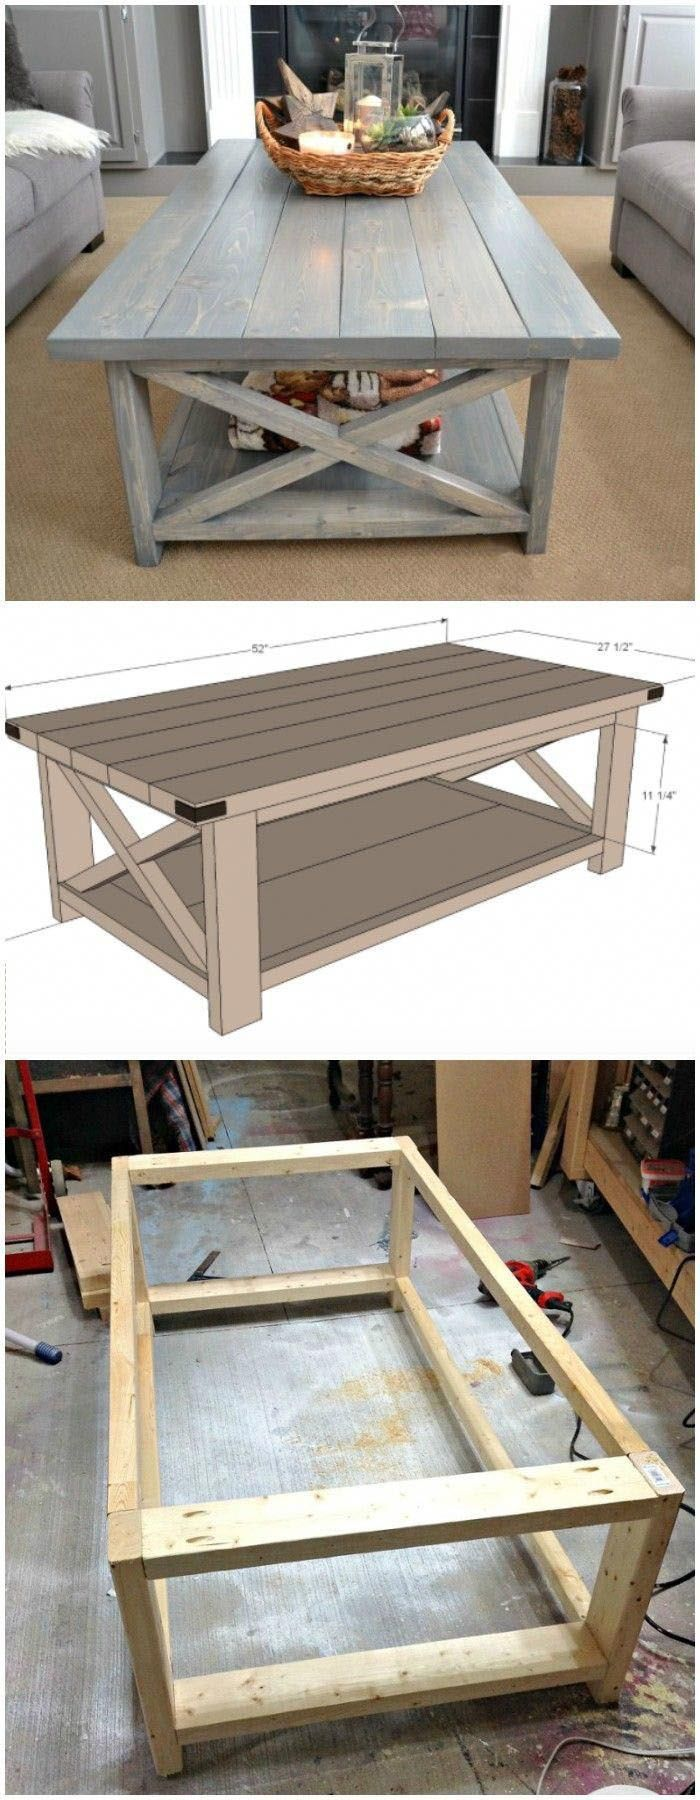 Photo of DO IT YOURSELF TO CREATE A PERSONALIZED DIY HOME DECOR – Page 5 of 51 – Breyi